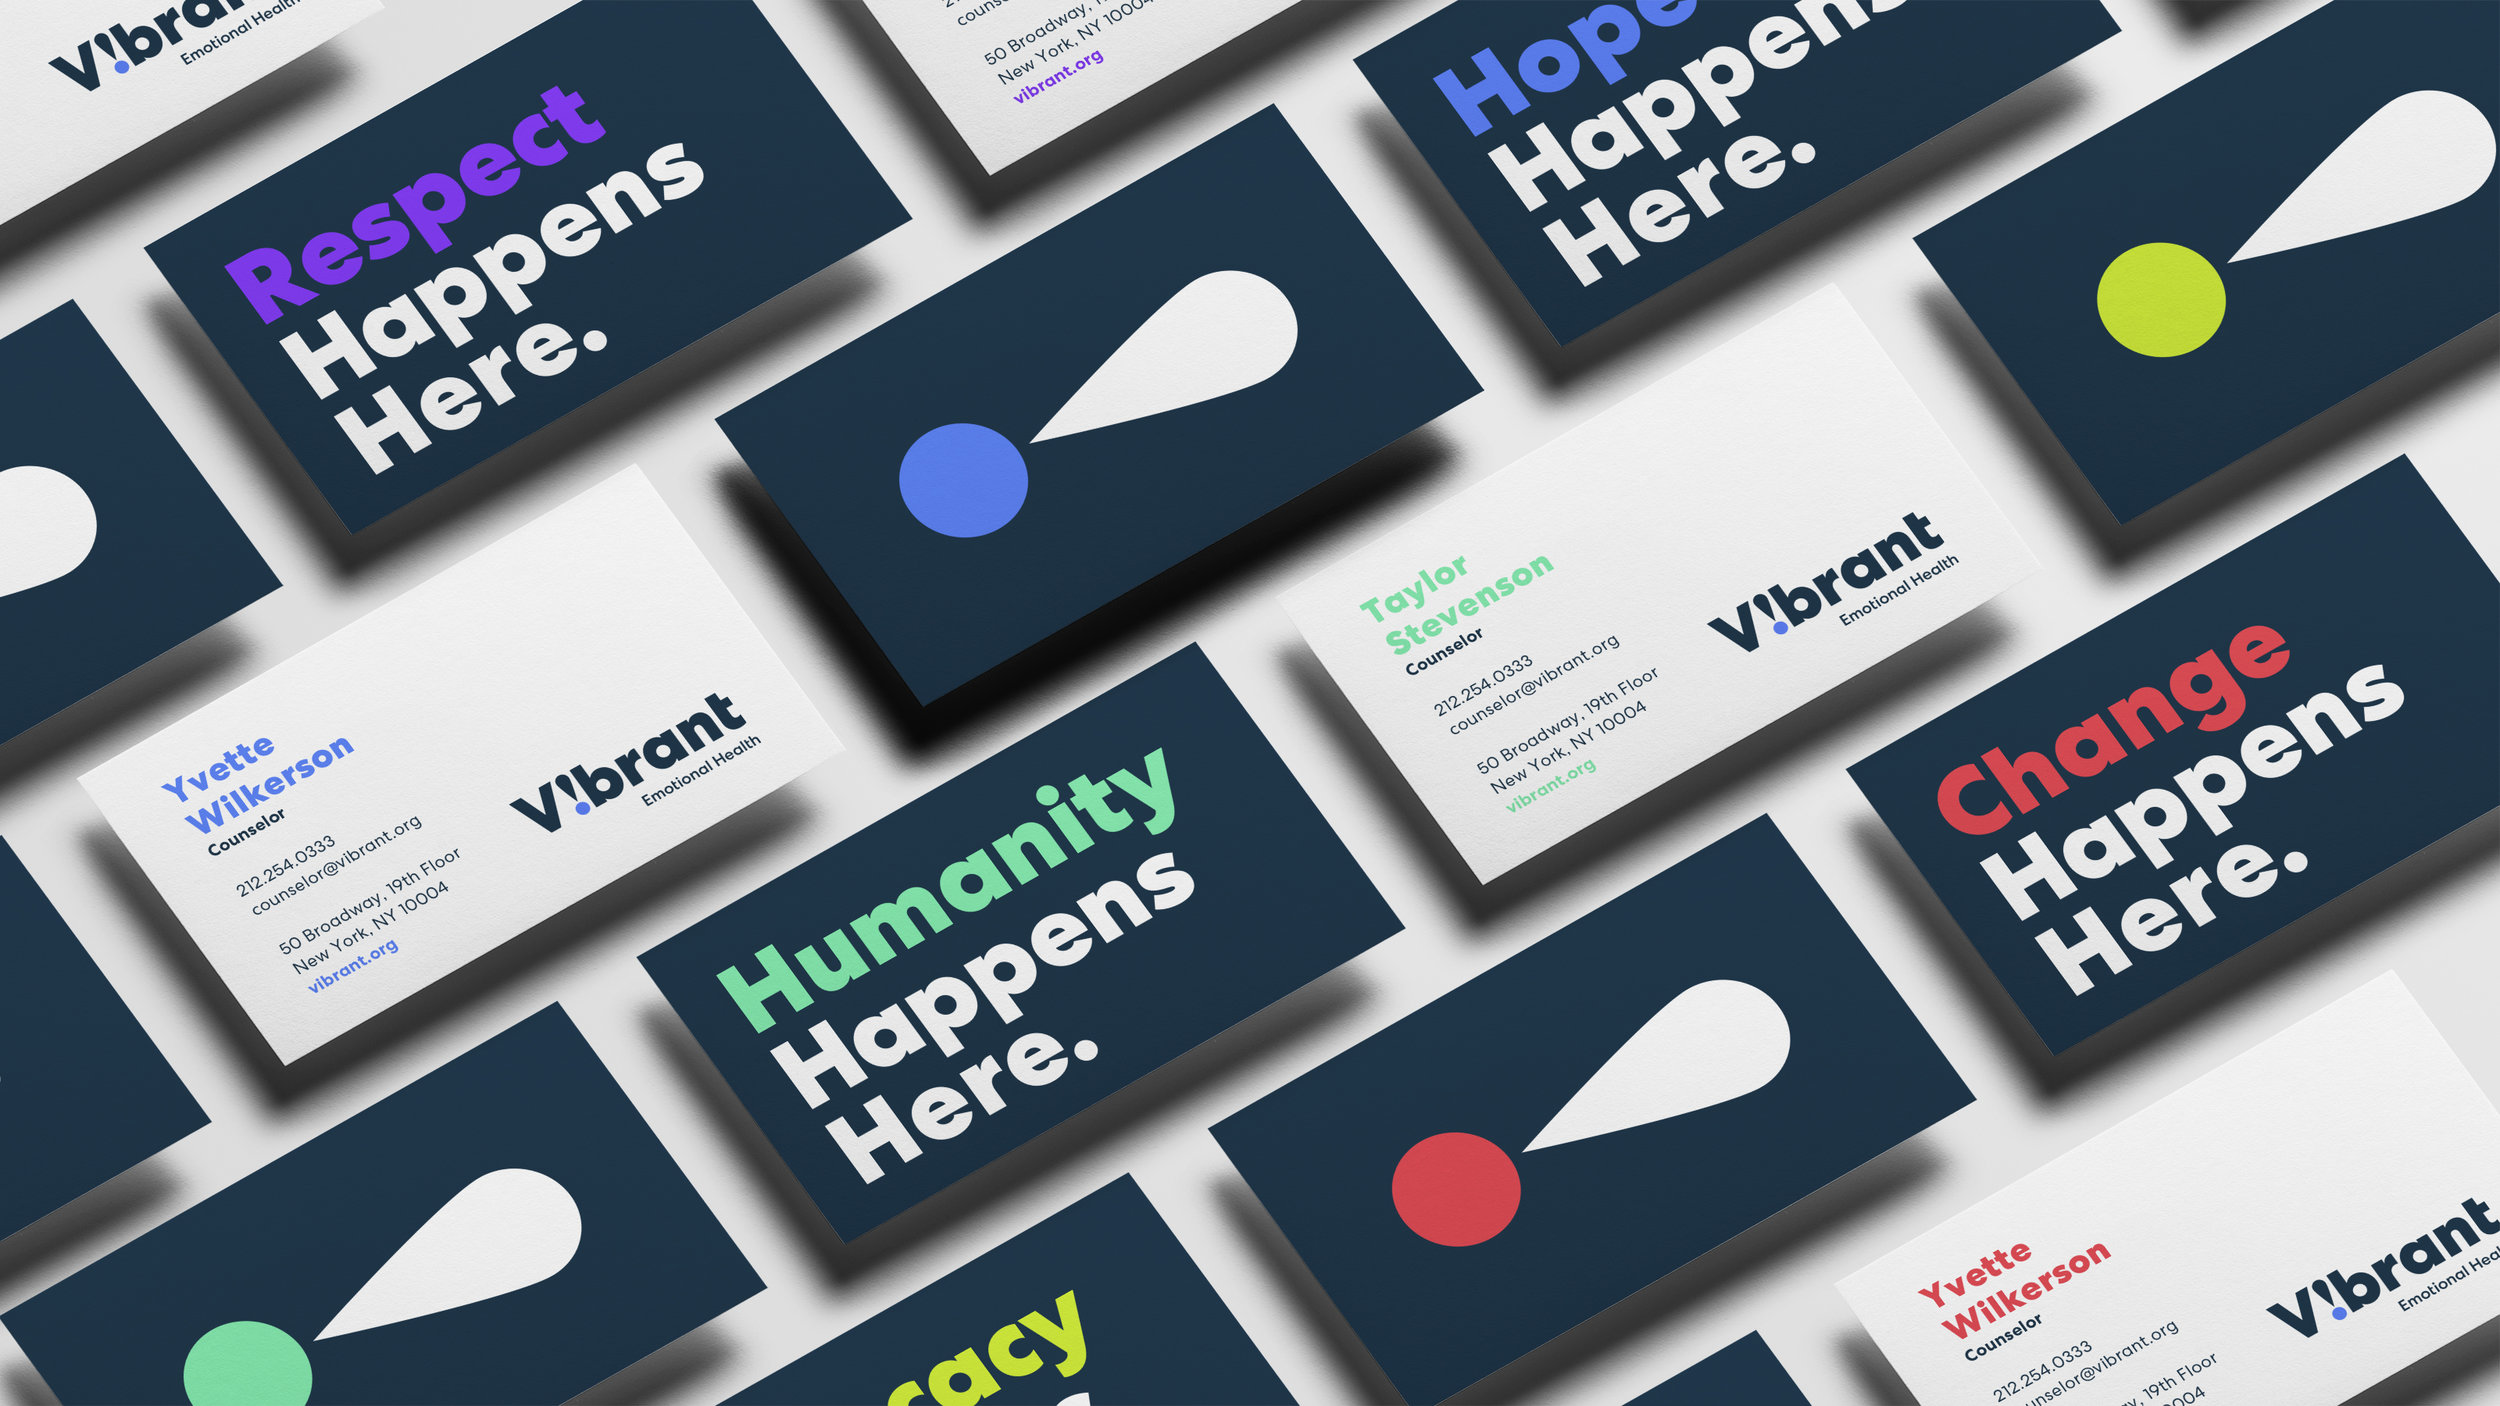 Stationery business systems design for Vibrant Emotional Health developed by Good Stuff Partners of Sausalito, a San Francisco Bay Area brand communications agency.